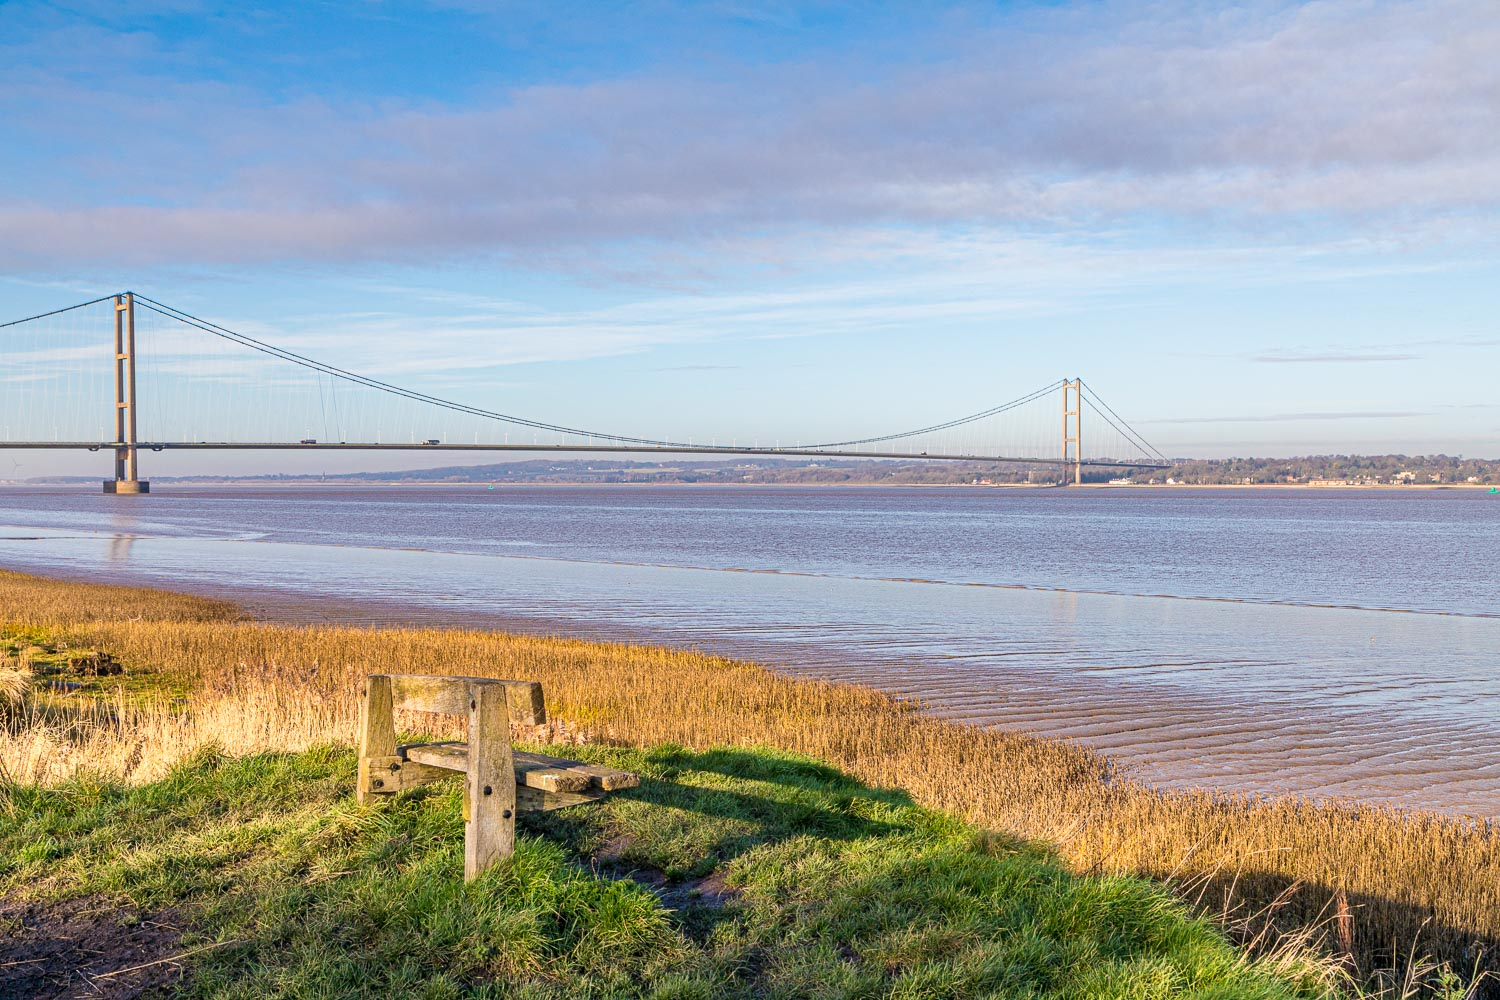 Barton Waterside walk, Humber Bridge